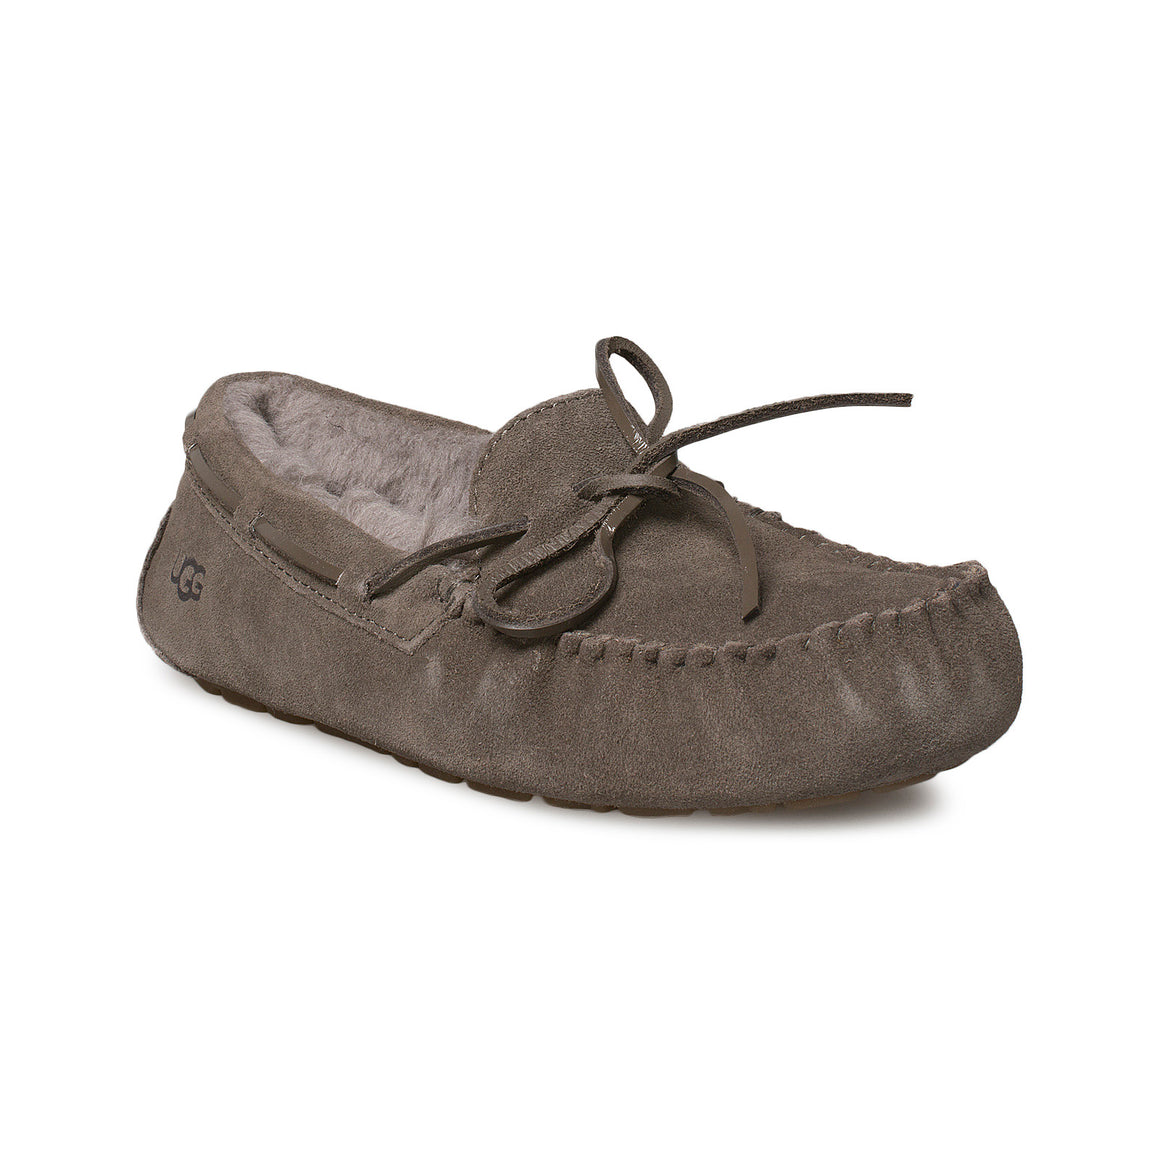 UGG Dakota Mole Slippers - Women's